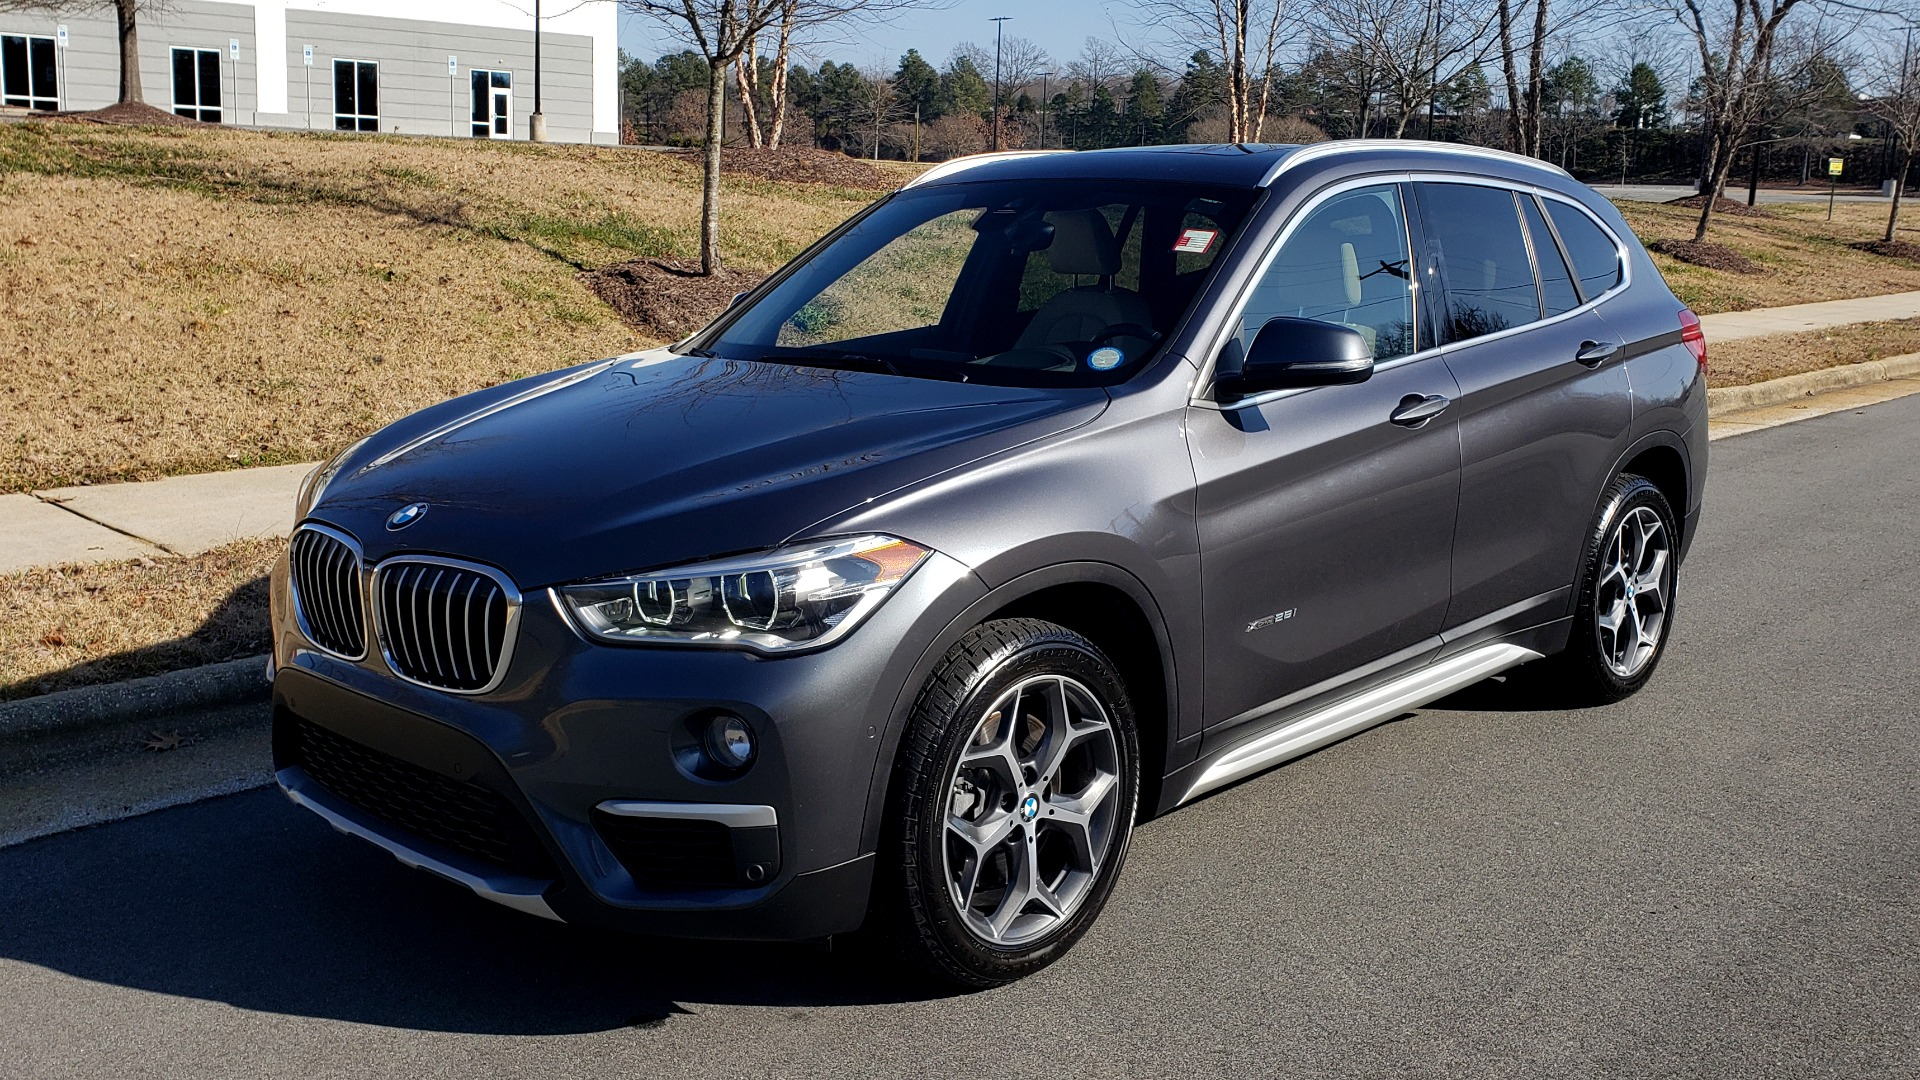 Used 2017 BMW X1 XDRIVE28I / PREM / TECH / DRVR ASST PLUS / COLD WTHR / REARVIEW for sale $26,995 at Formula Imports in Charlotte NC 28227 1